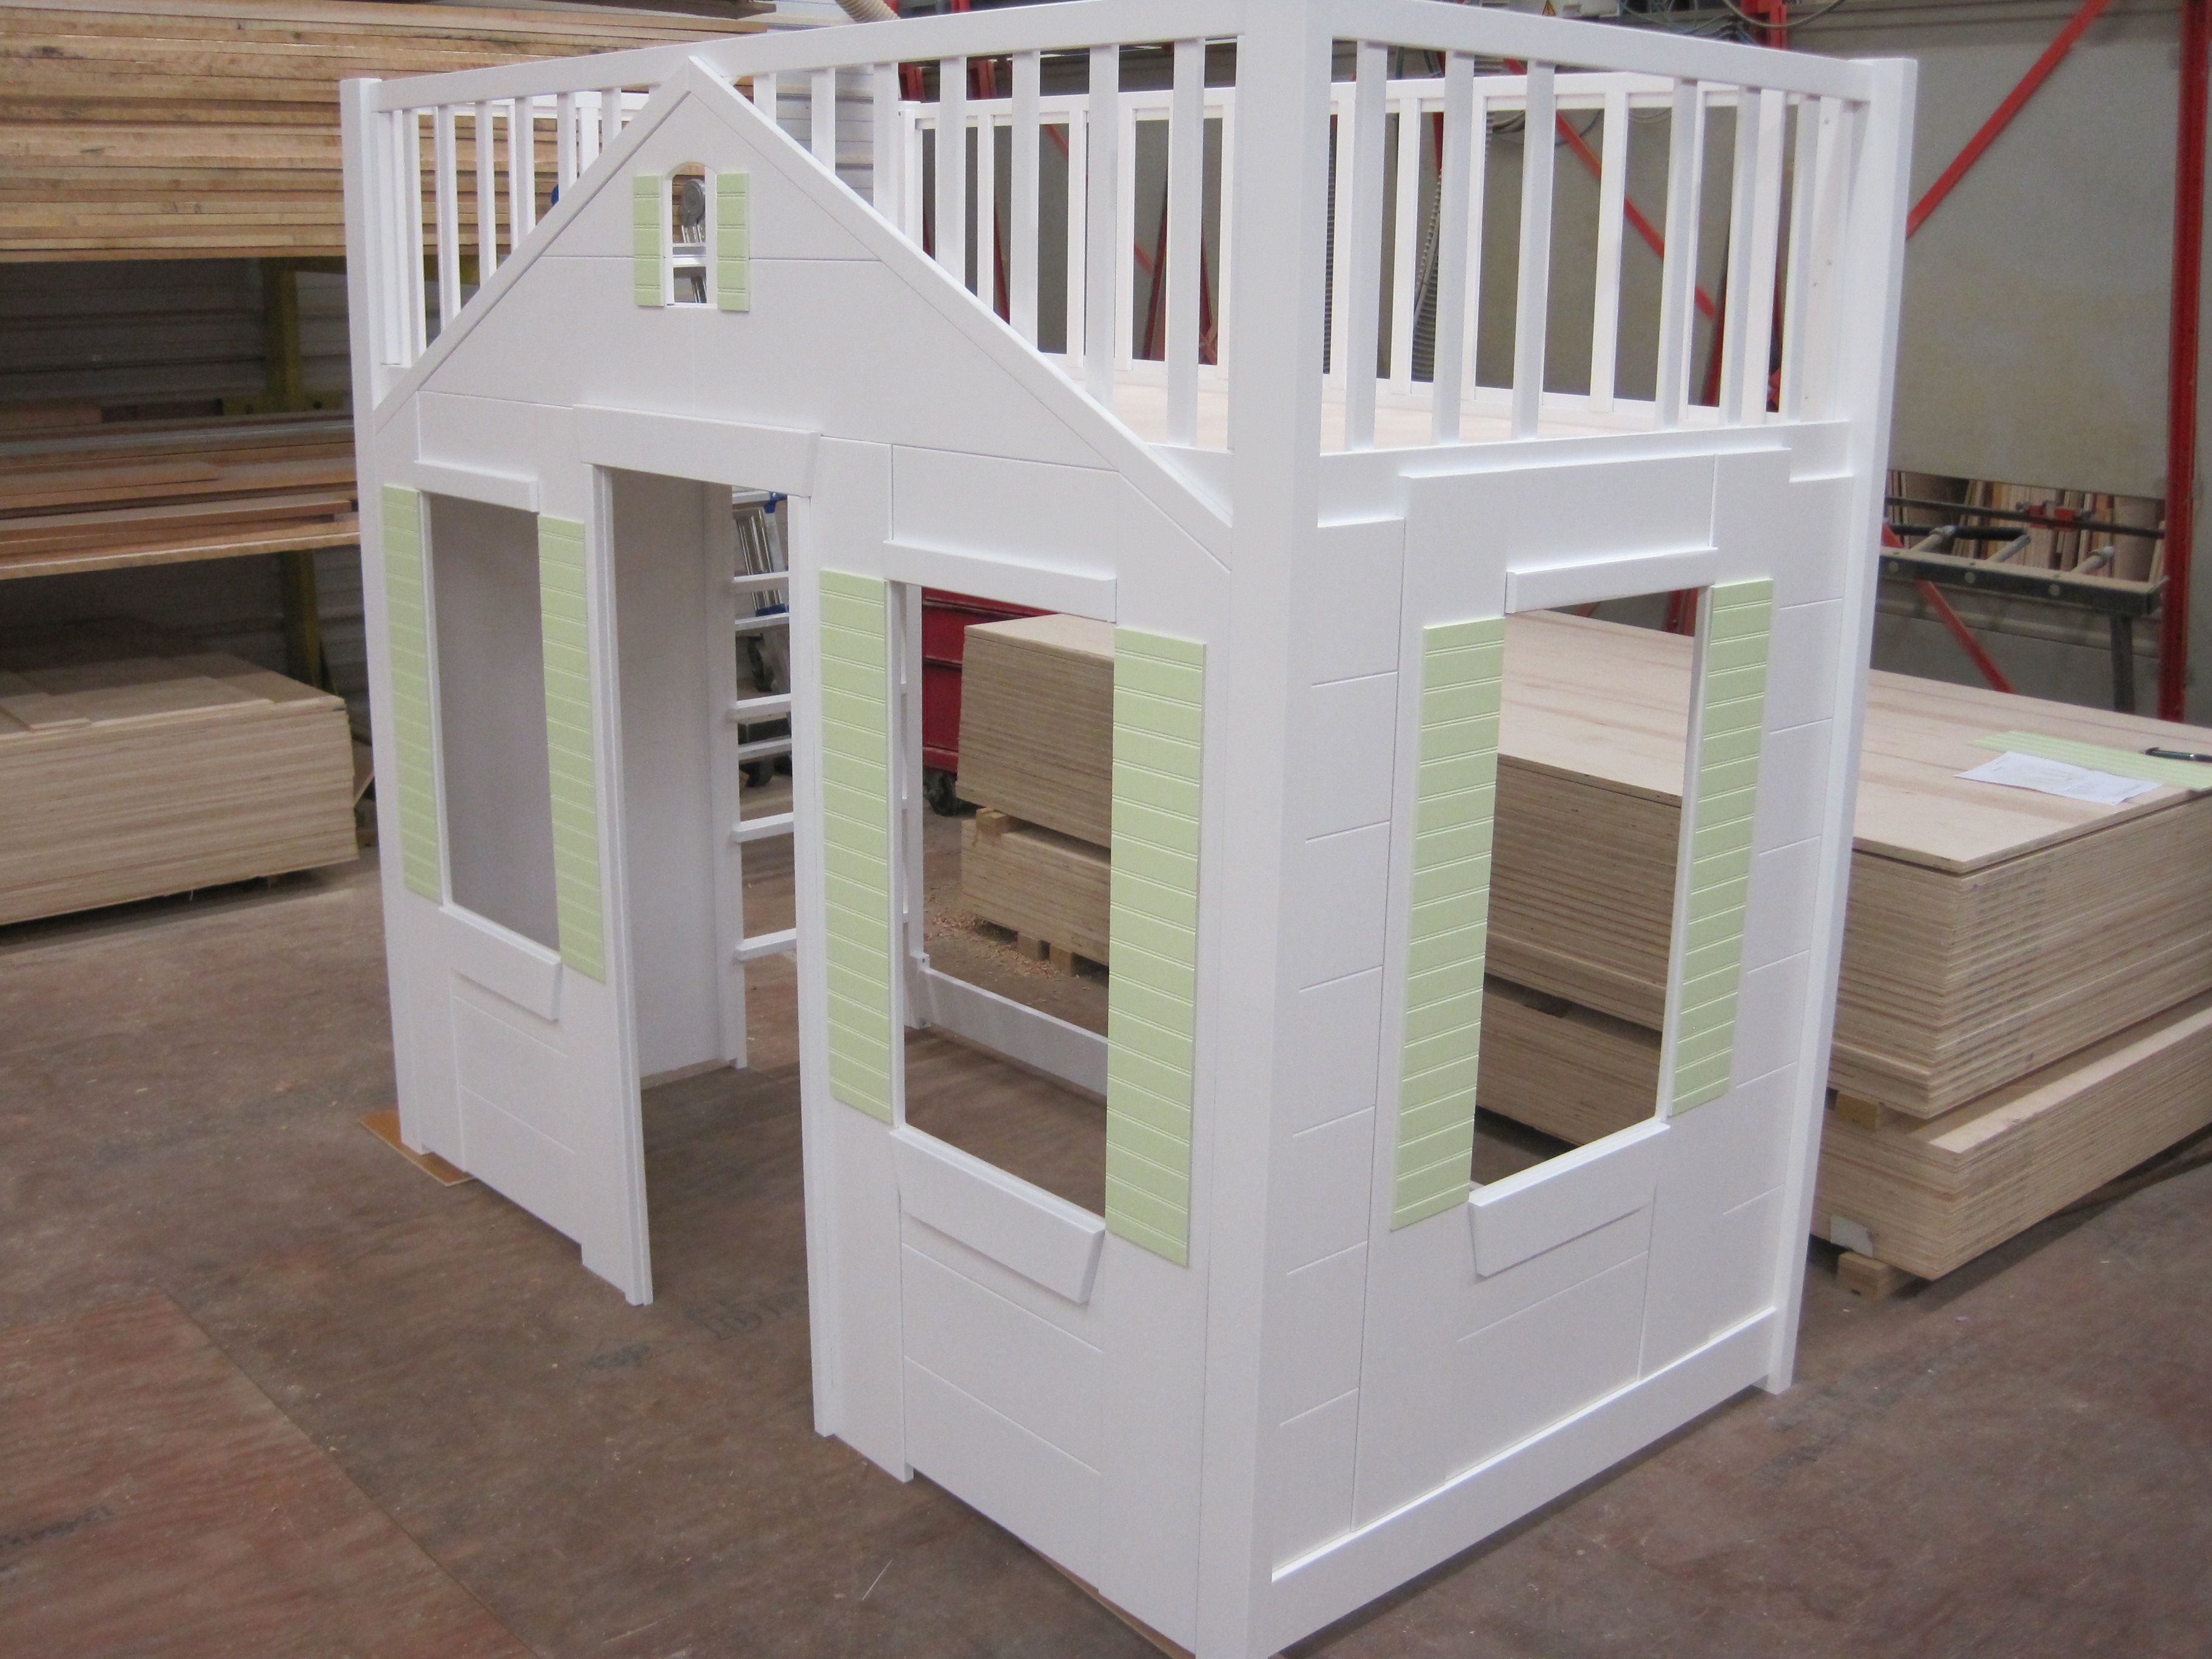 Loft Bed With Playhouse Underneath Playhouse Bed By